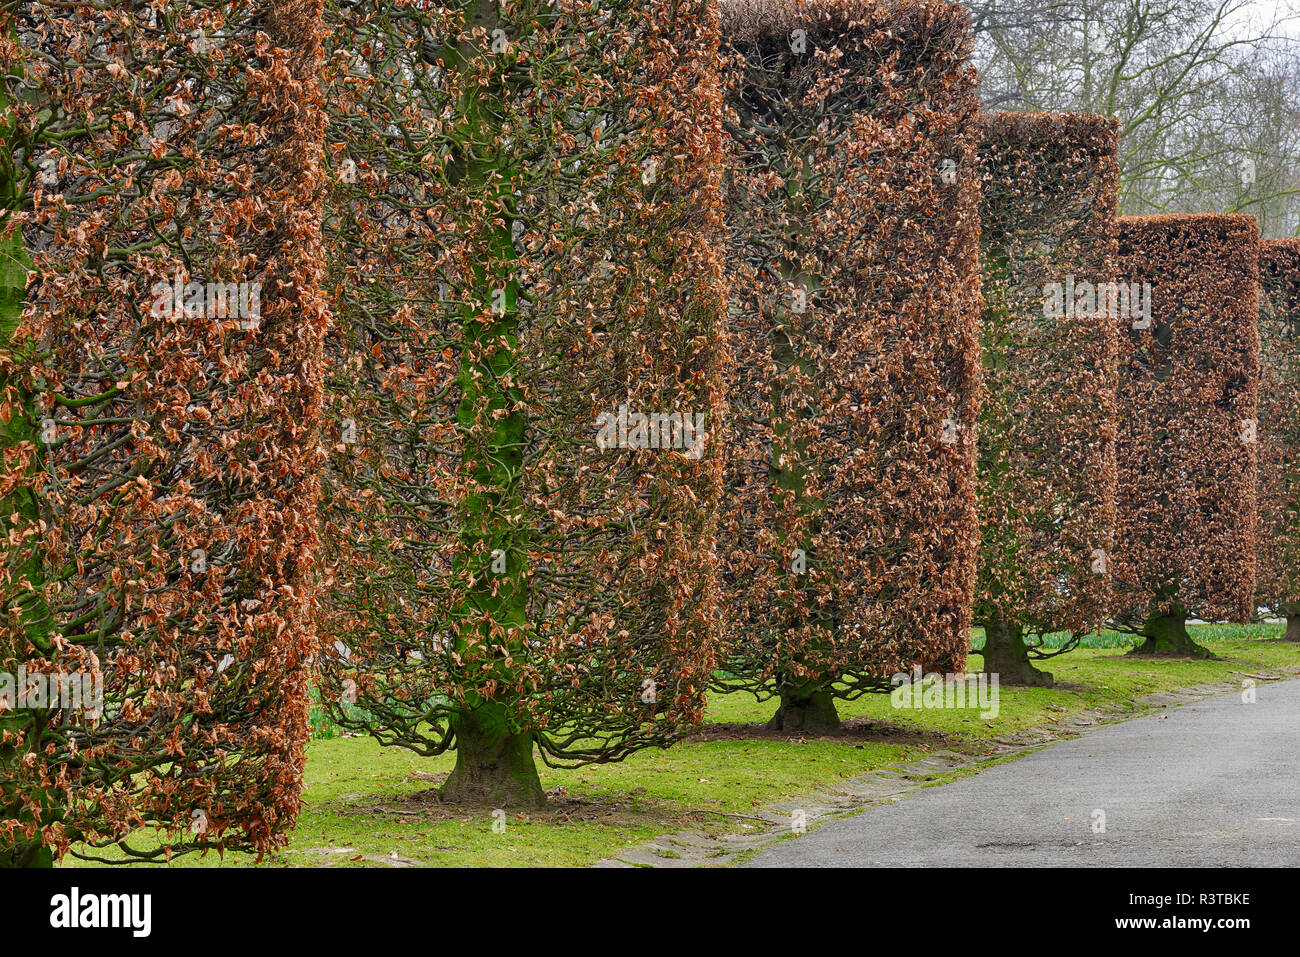 Belgium, Brussels, Parc des Expositions, pruned trees in autumn - Stock Image